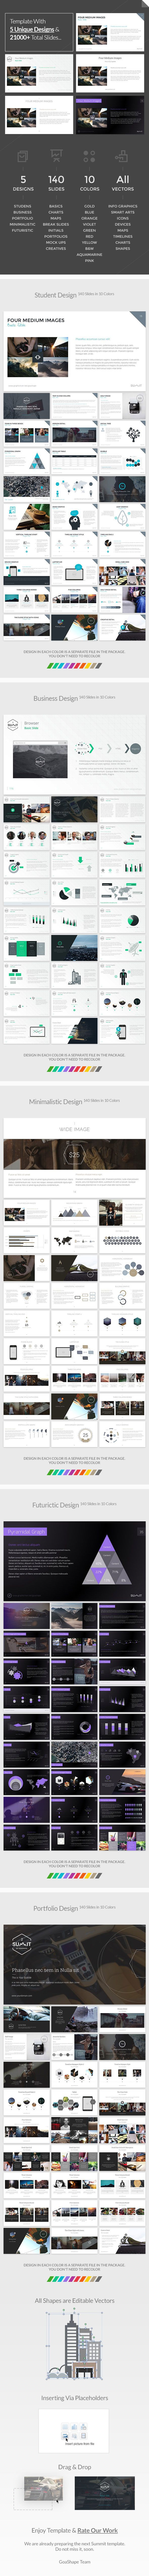 Summit 2 - Multi Design PowerPoint Template | GraphicRiver